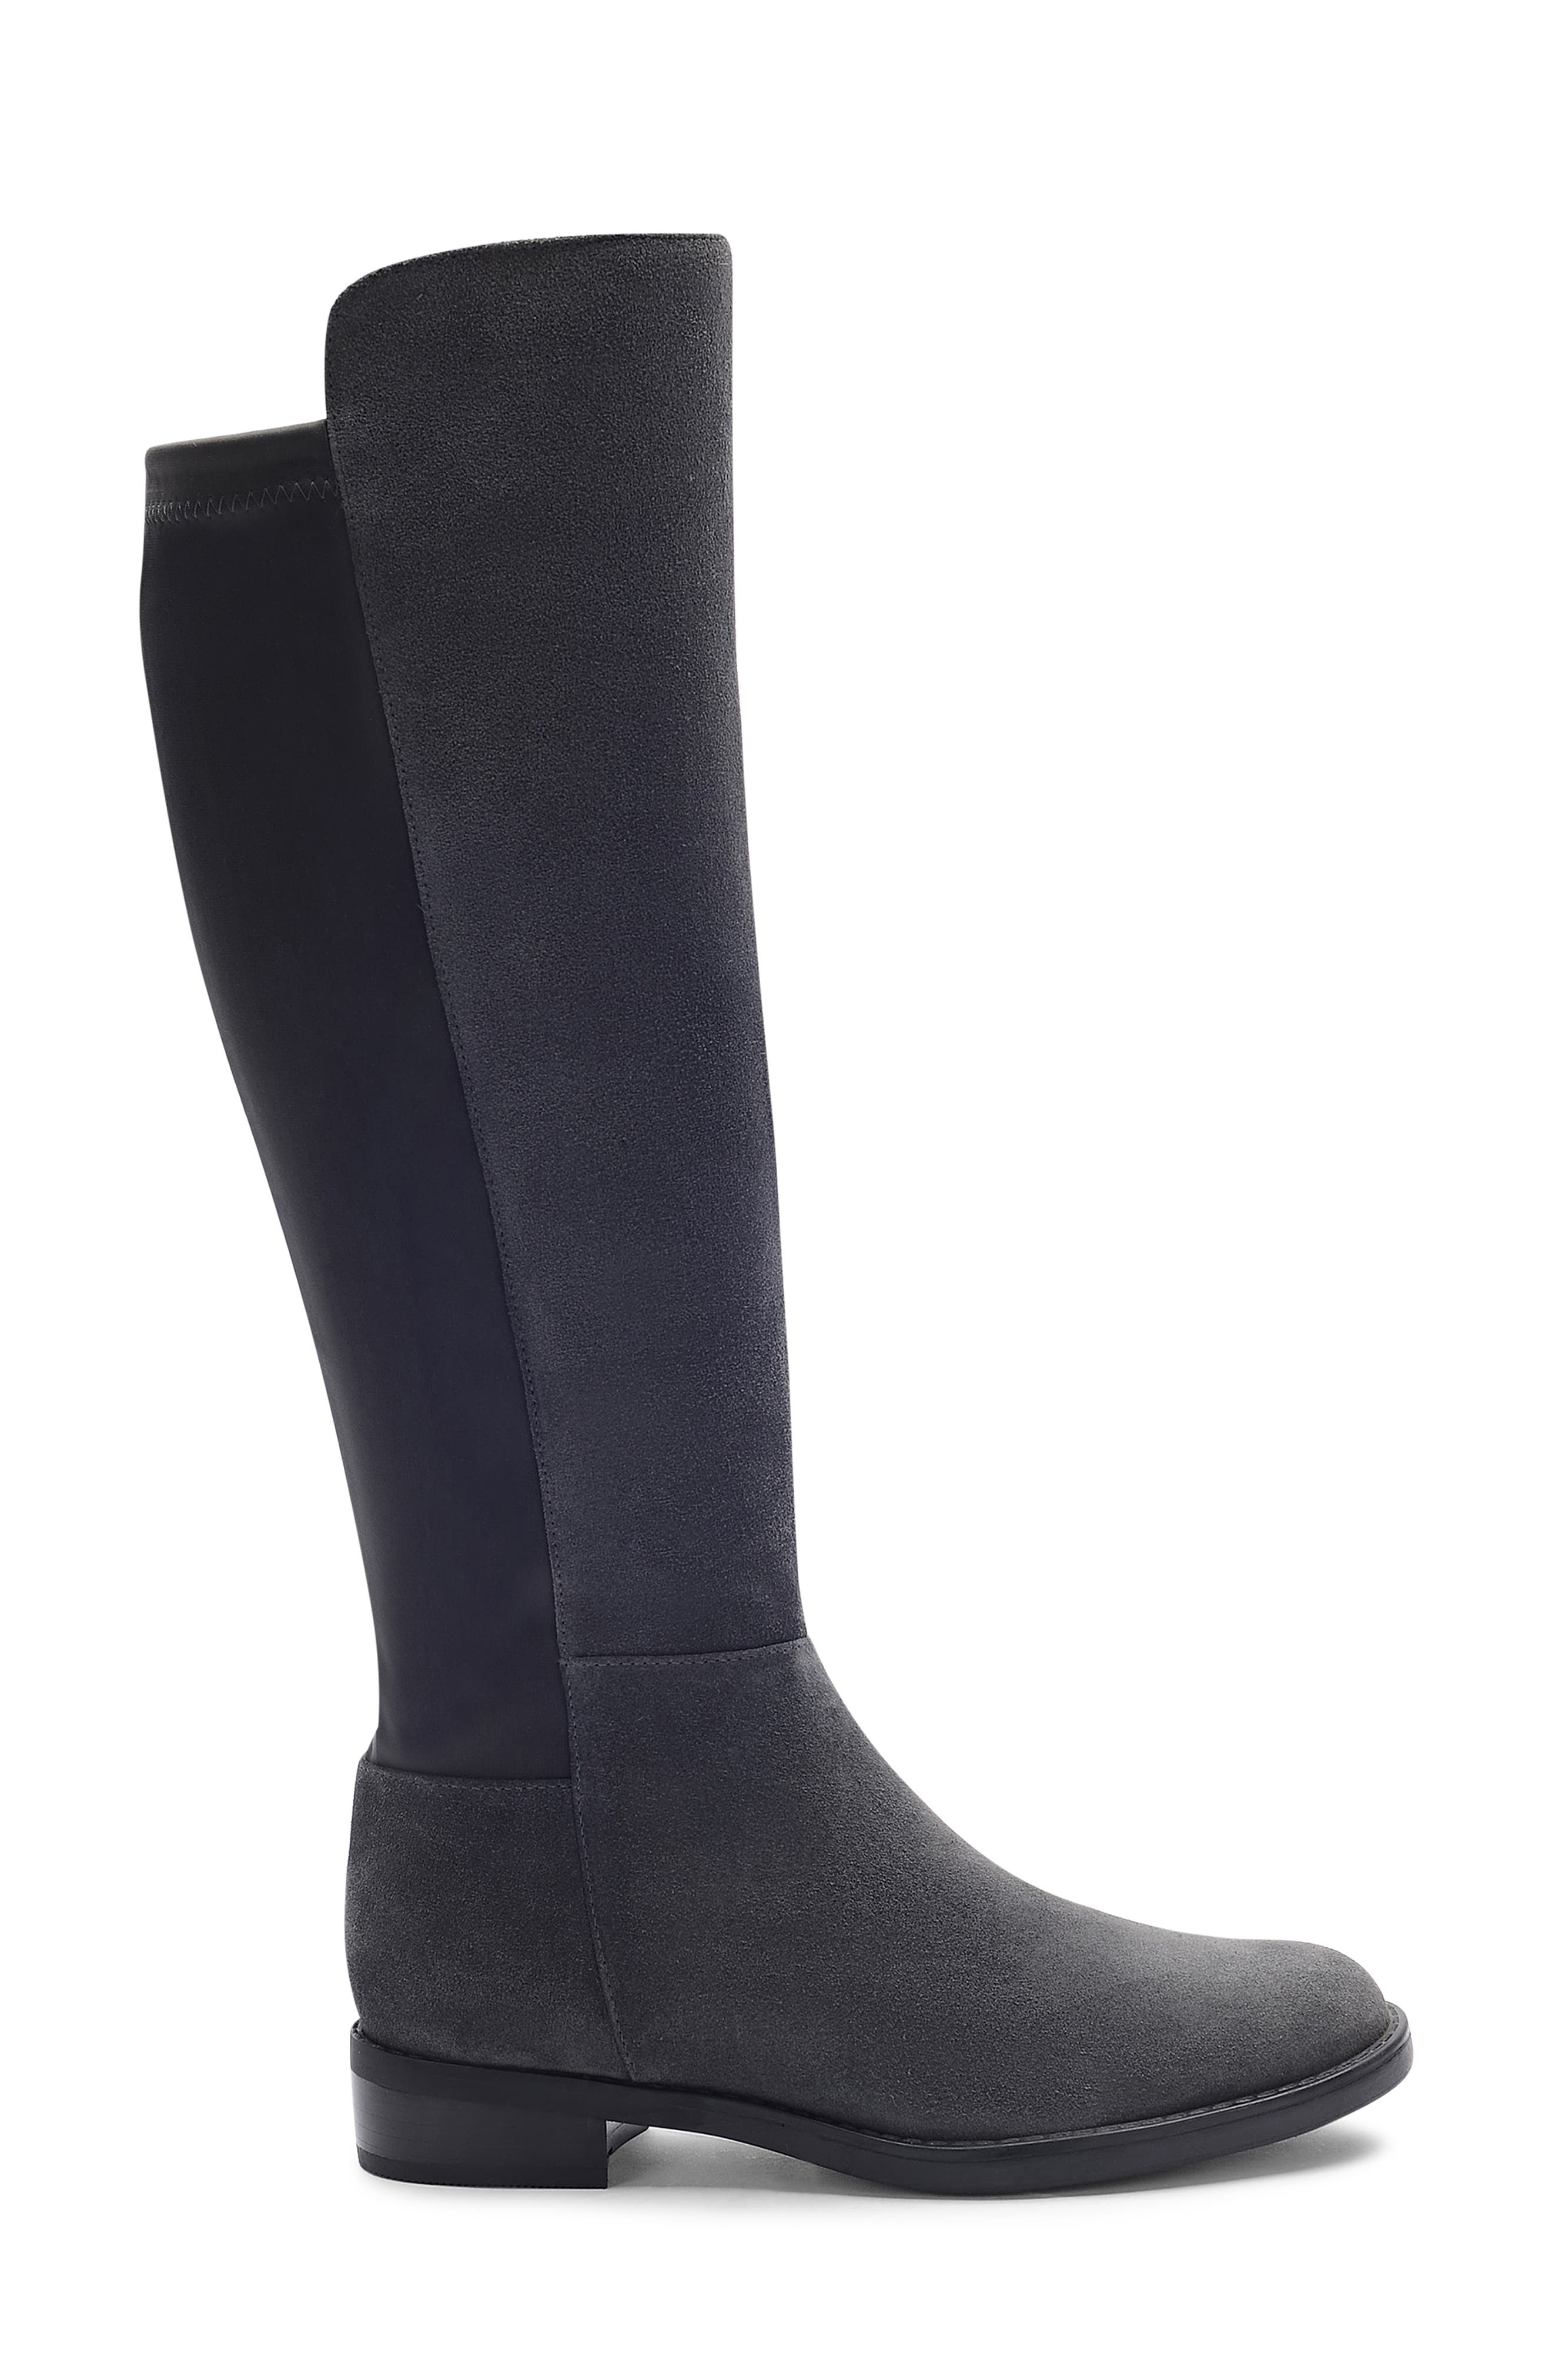 BLONDO, Ellie Waterproof Knee High Riding Boot, Alternate thumbnail 3, color, DARK GREY SUEDE